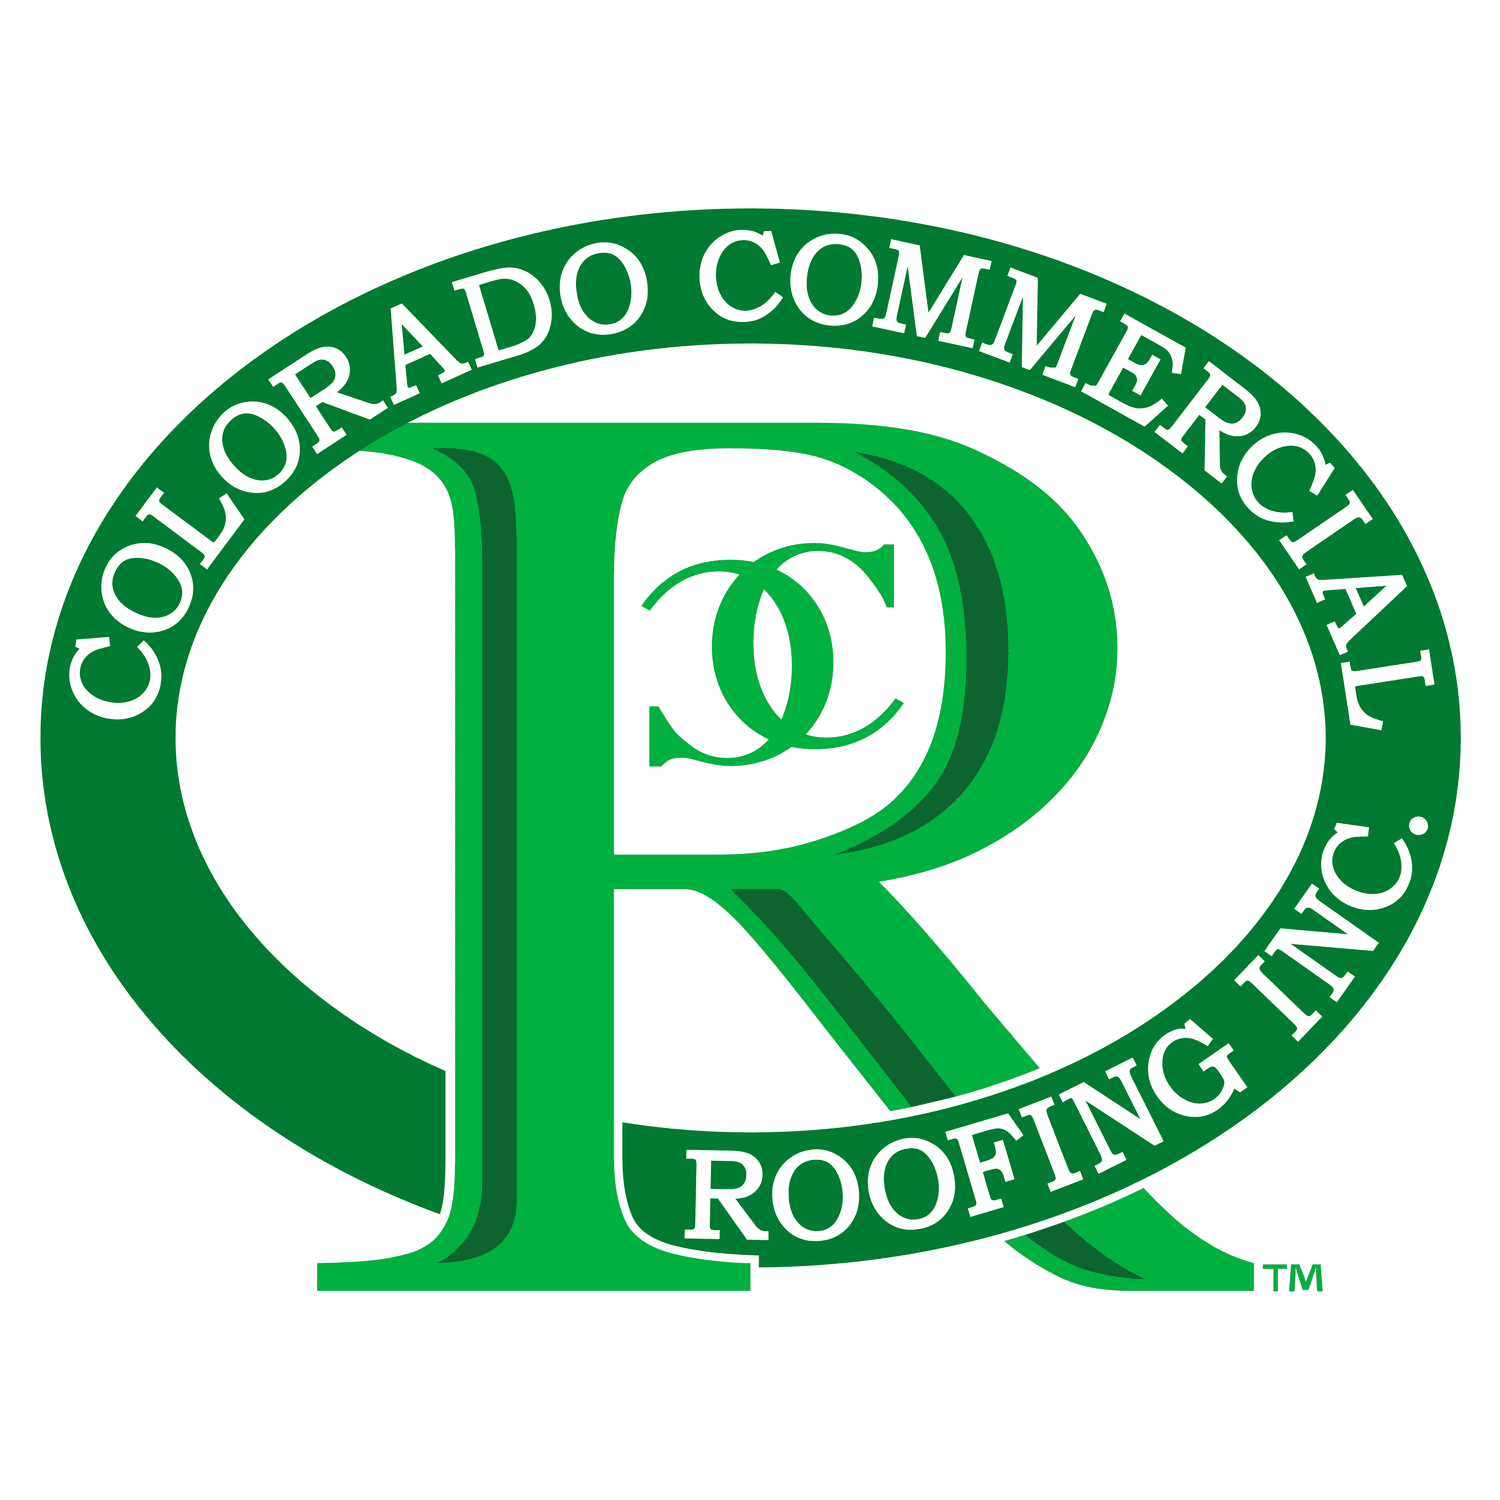 Colorado Commercial Roofing, Inc. image 0